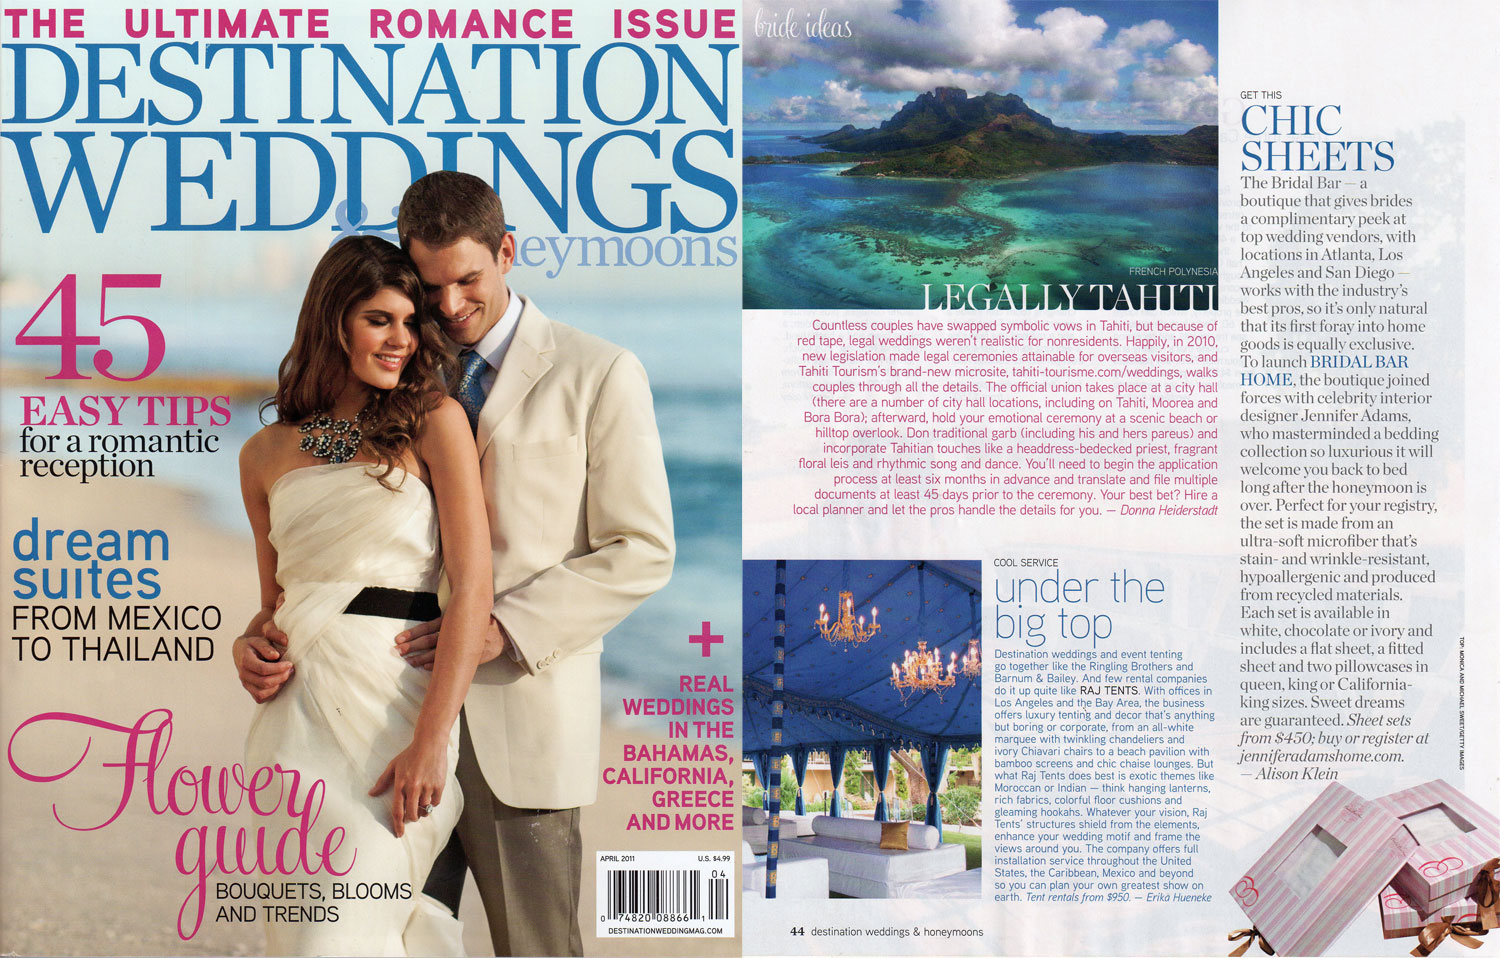 raj-tents-destination-wedding-magazine-2011.jpg